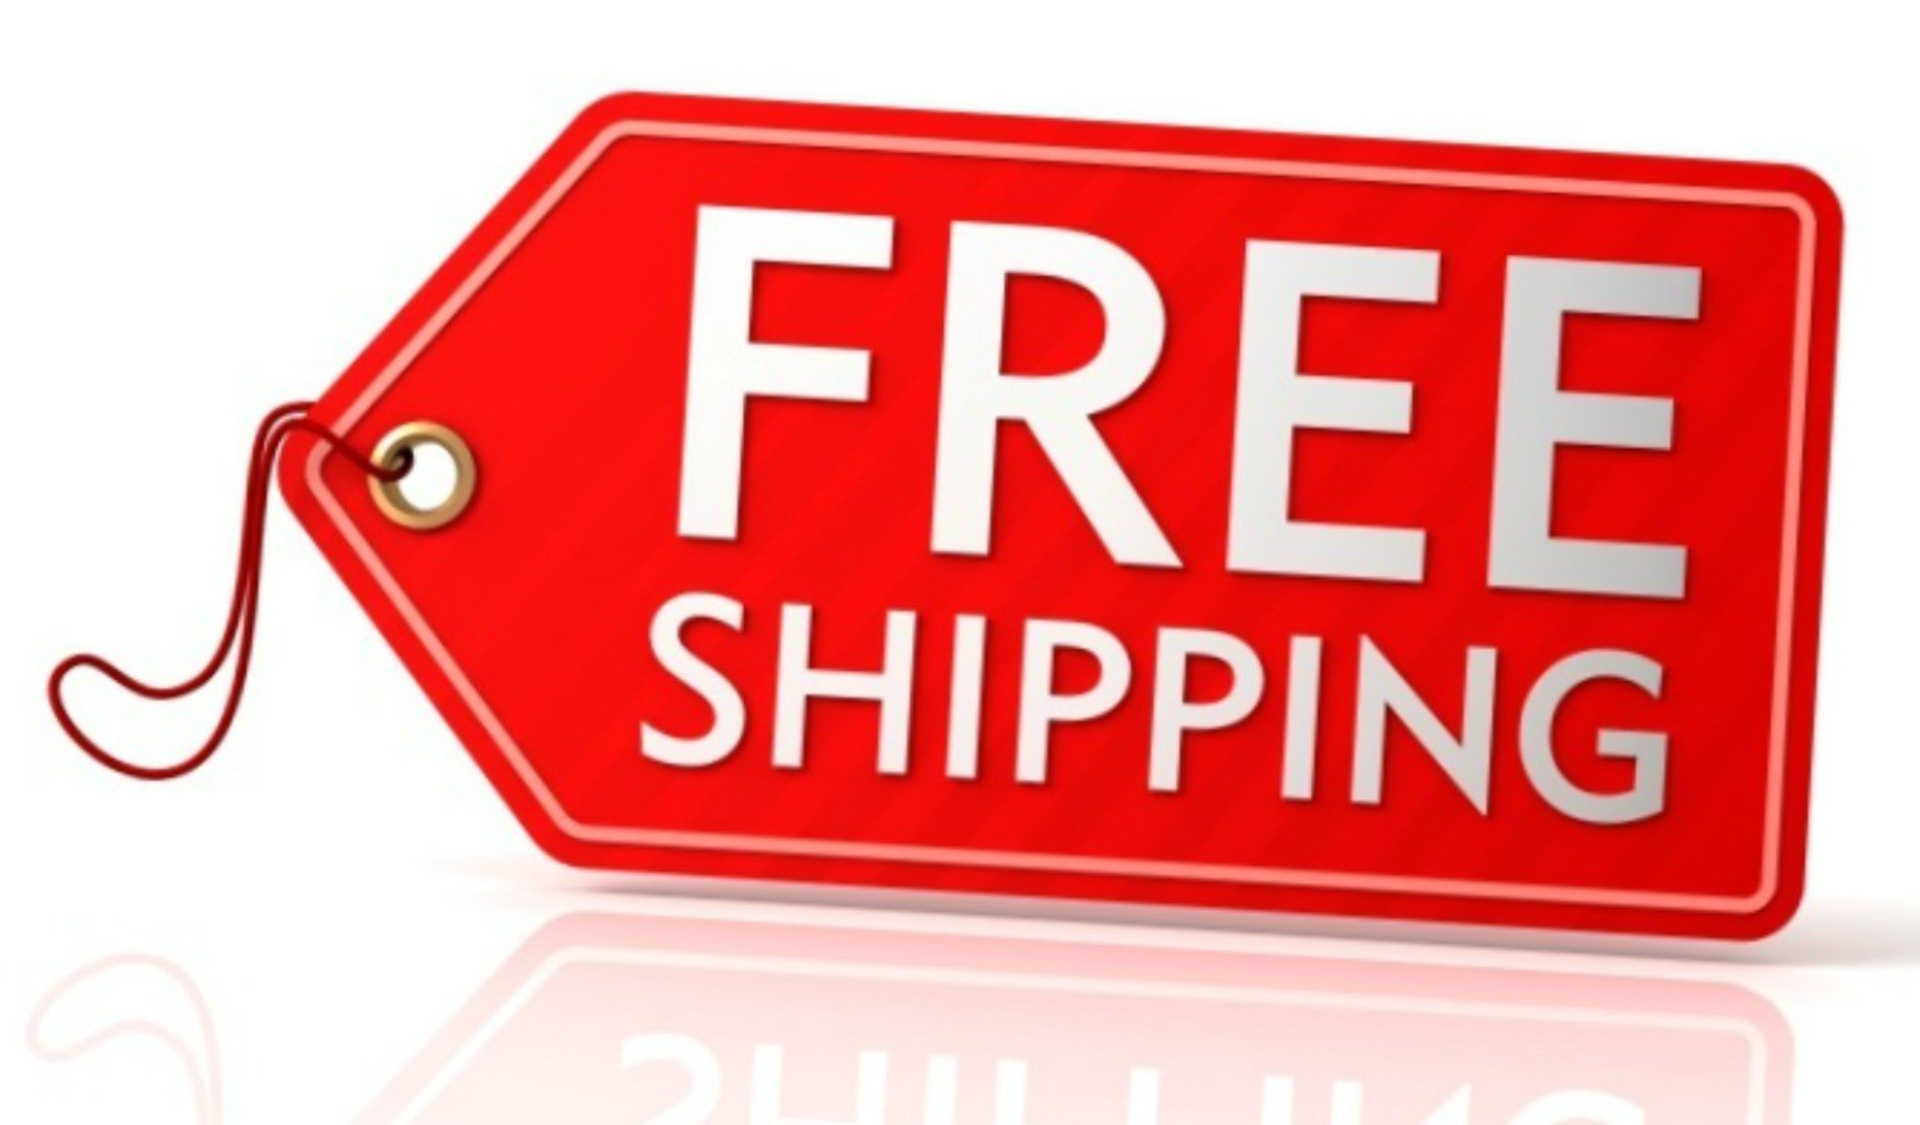 Black Friday Deals - Free-Shipping